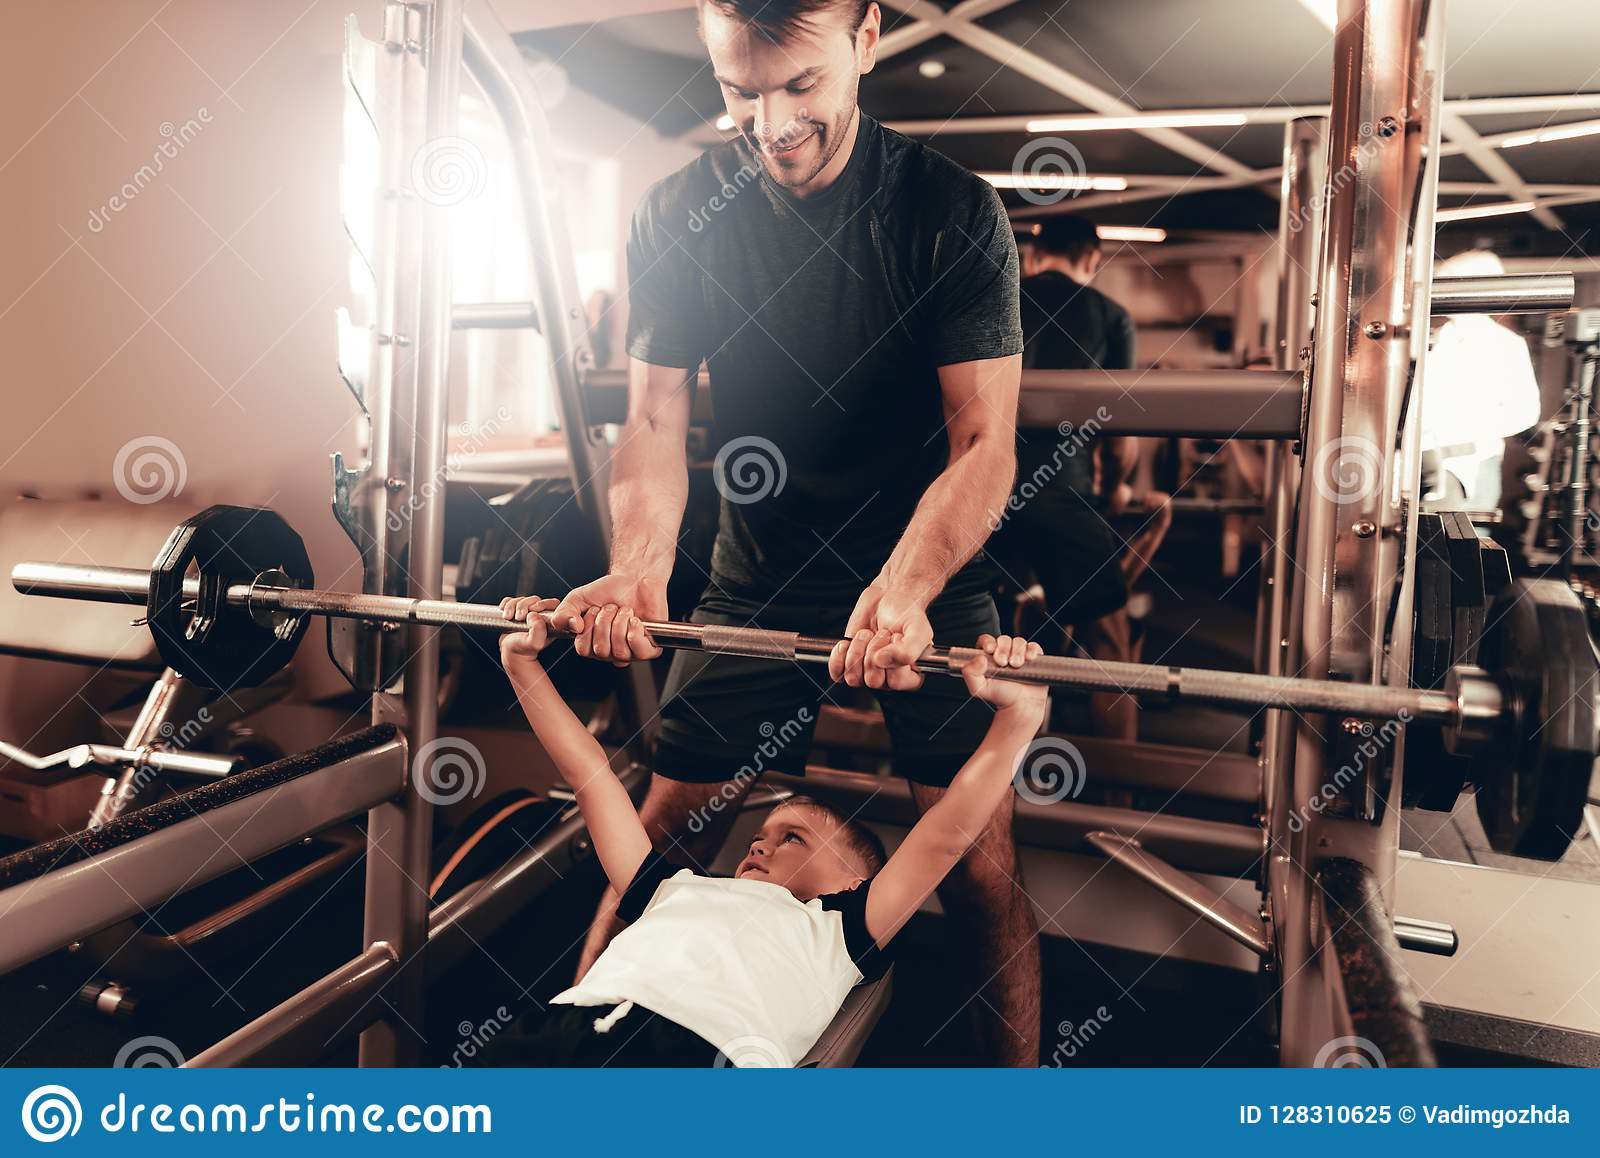 Father Support To Son While Lifting The Barbell.